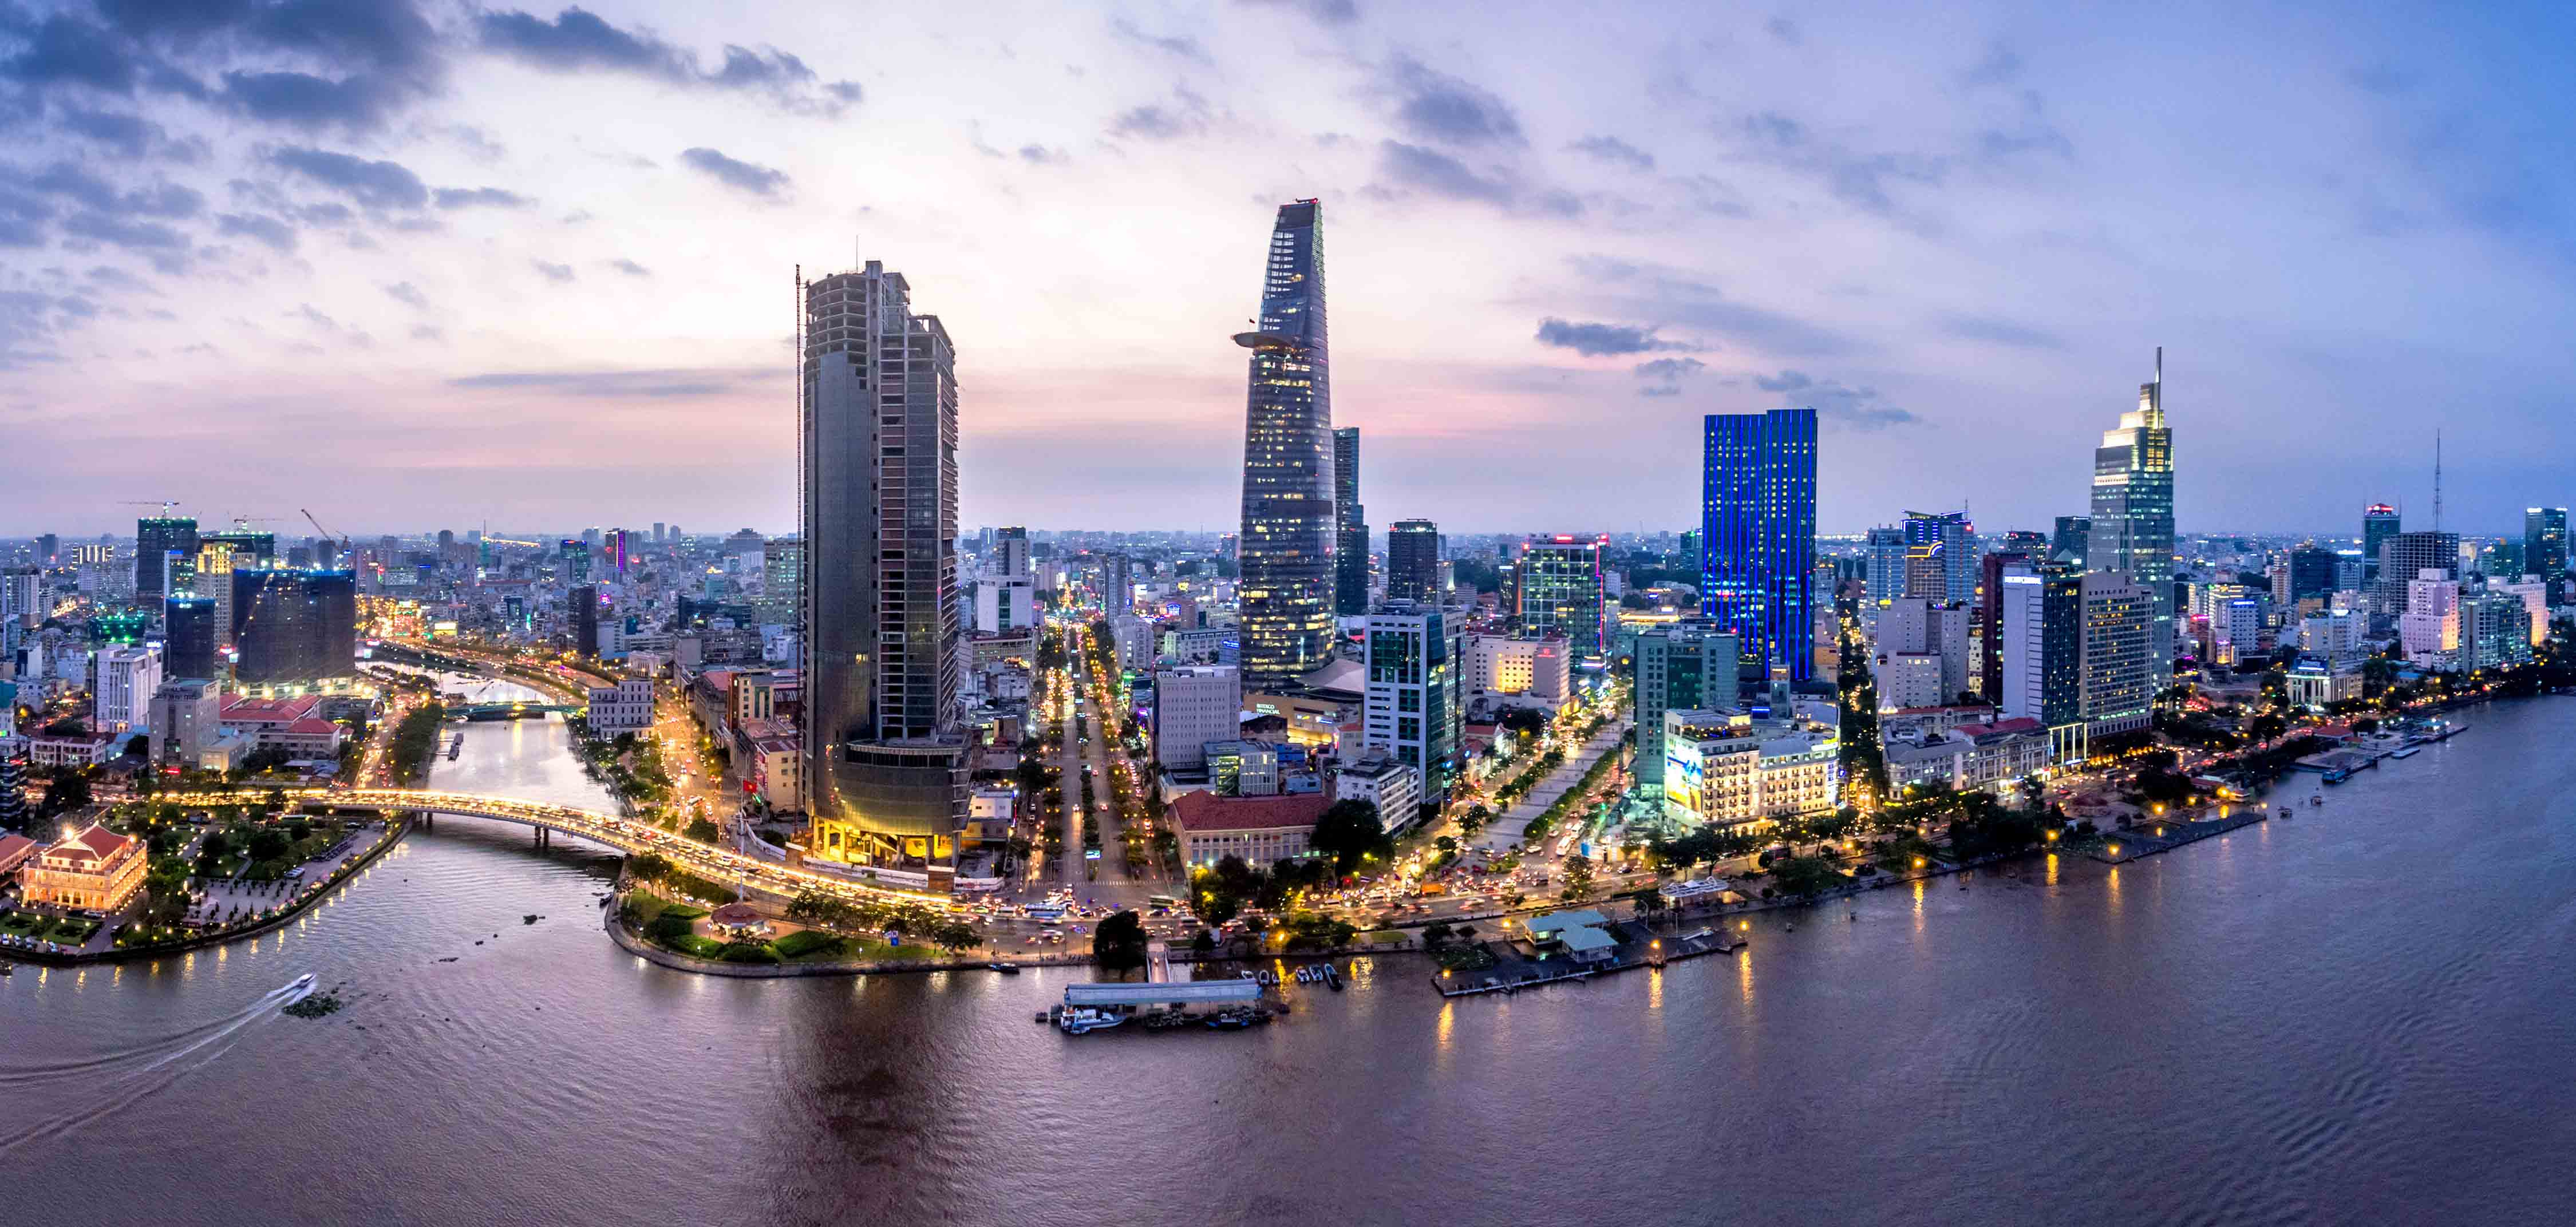 Ho Chi Minh City, one of the fastest growing city economies in Asia, is also experiencing the negative impacts of its booming economy: traffic congestion, air pollution, and limited infrastructure.